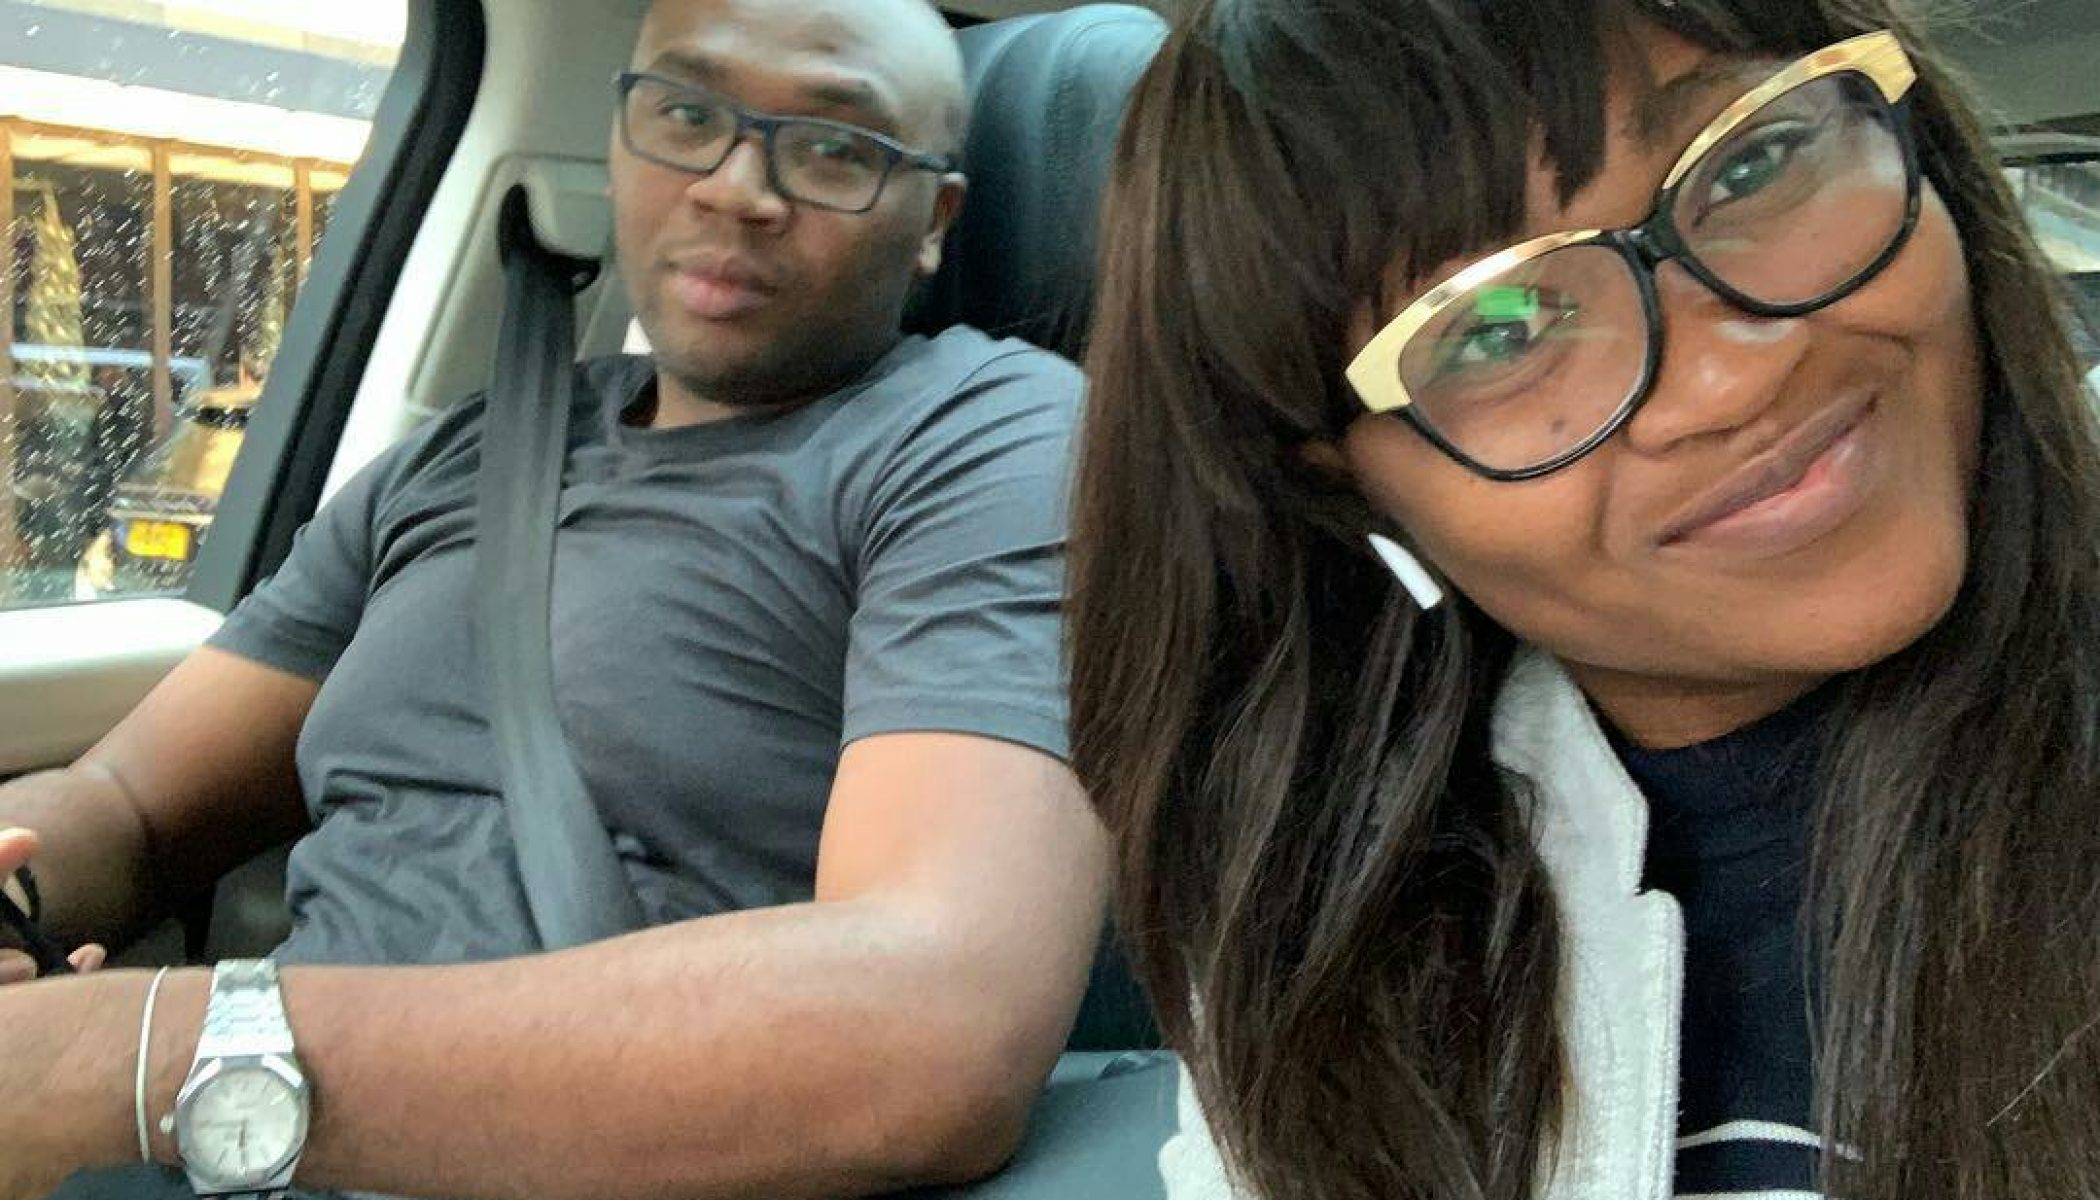 Jason Njoku and Mary Njoku